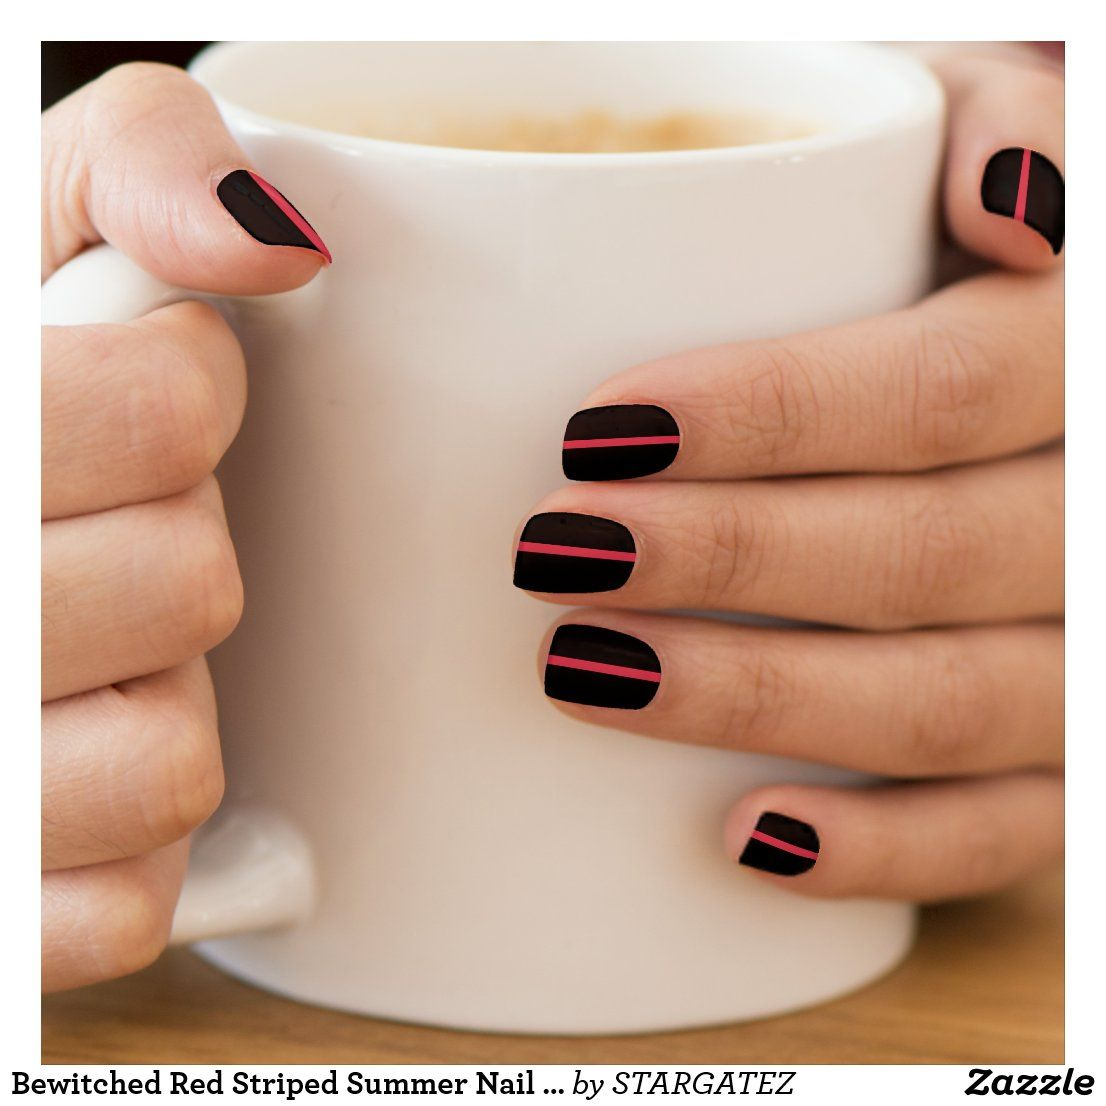 Bewitched Red Striped Summer Nail Art Design | Zazzle.com